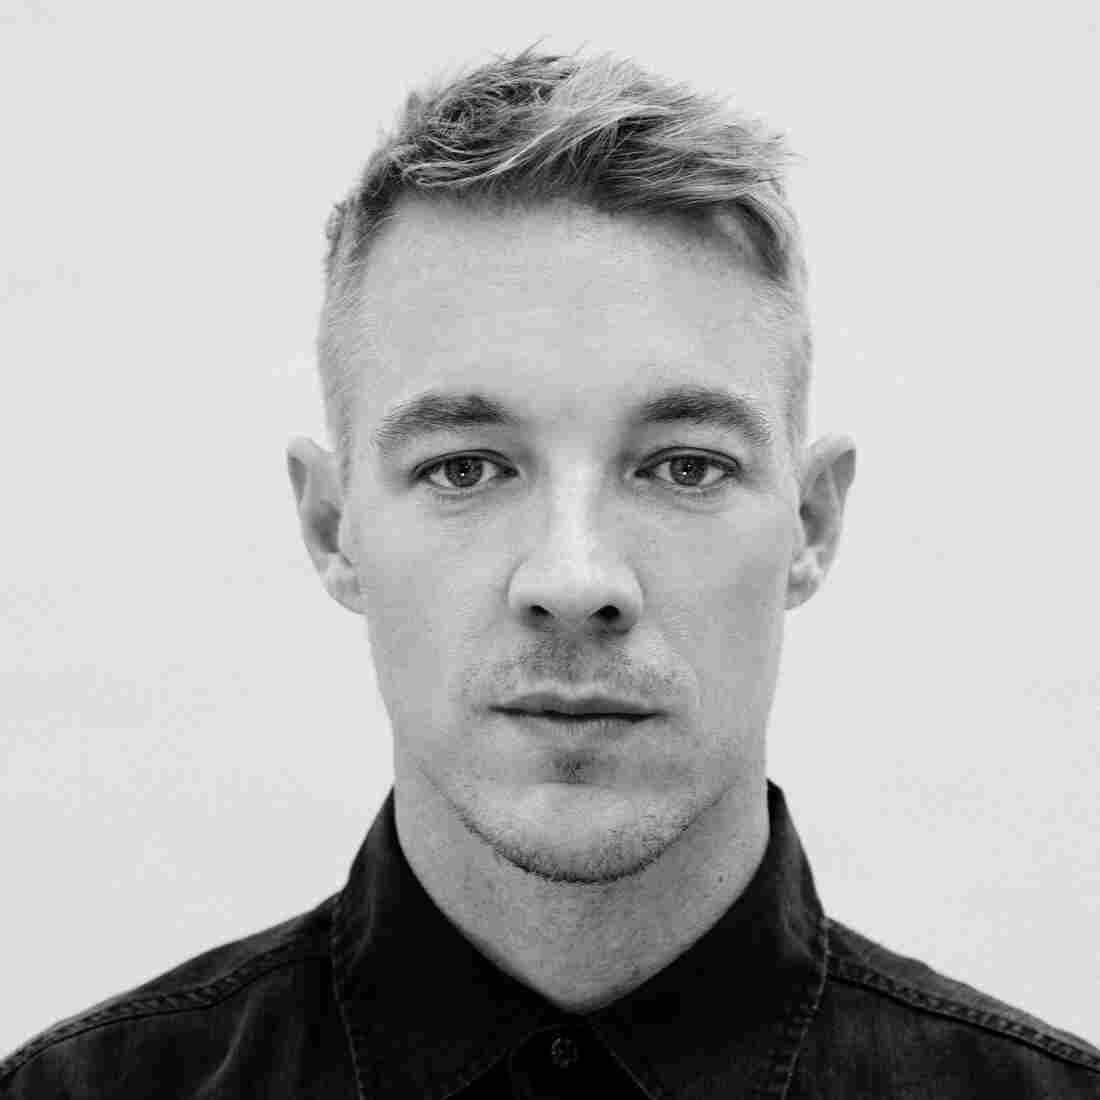 """""""People like me, DJs and producers, have a bigger say and a bigger voice than we've ever had before,"""" says Thomas Wesley Pentz, better known as Diplo."""